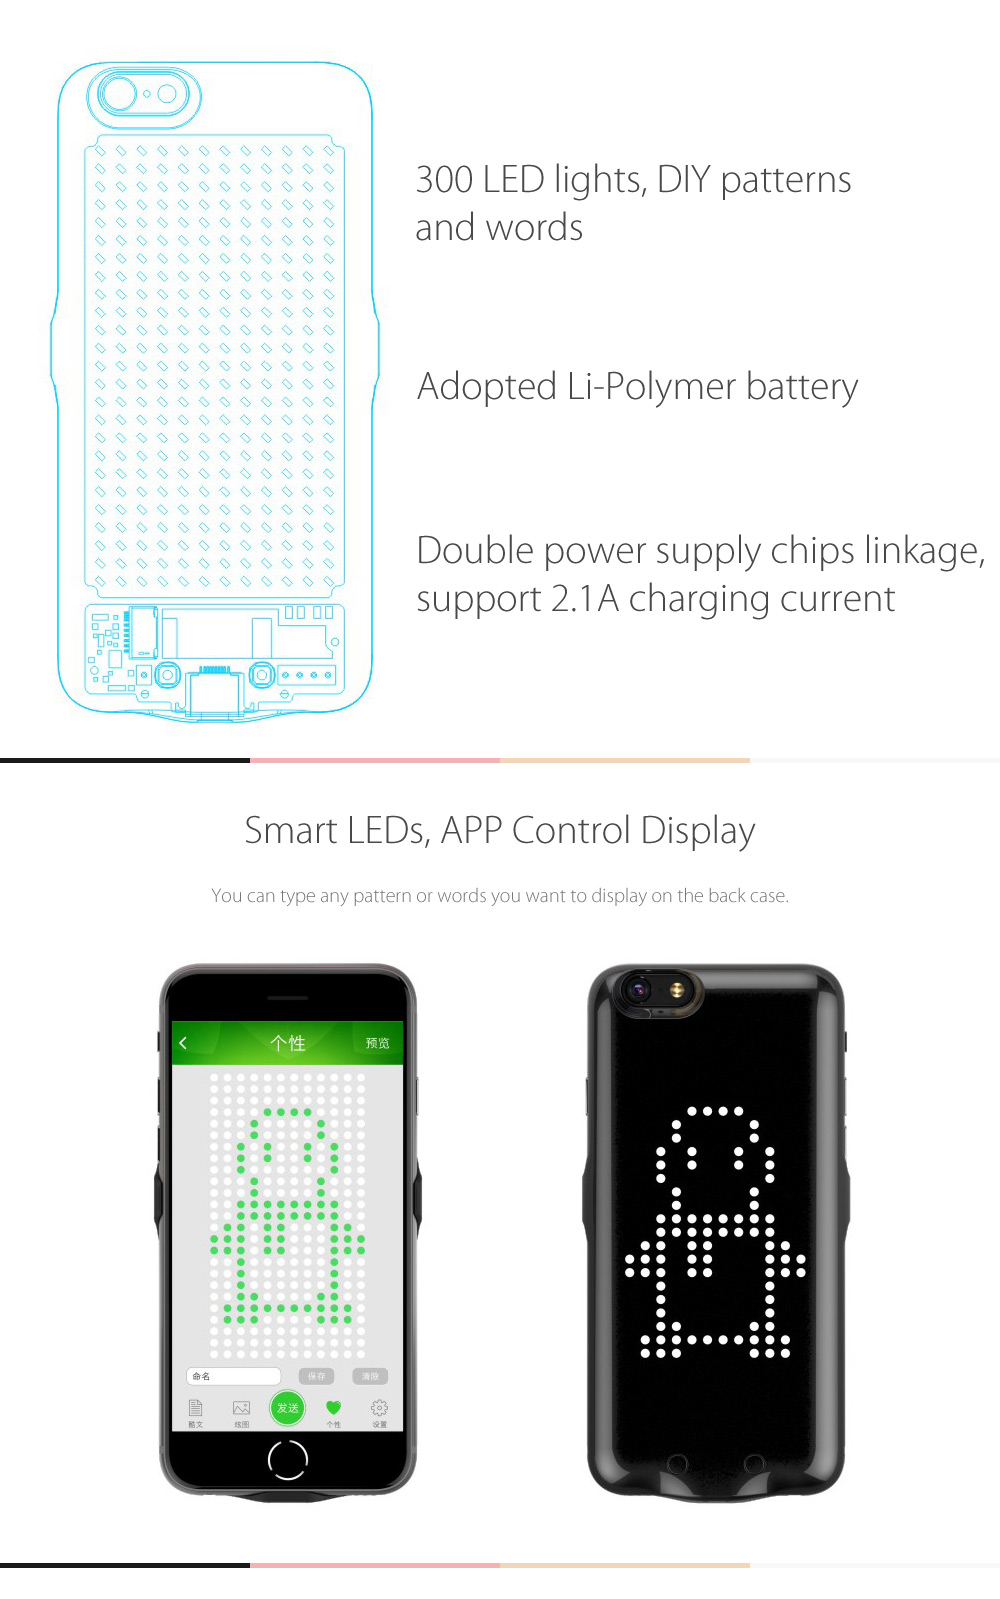 X6 Smart LED Display Backup Power Bank 1800mAh Energy Pack Back Case for iPhone 6 / 6S